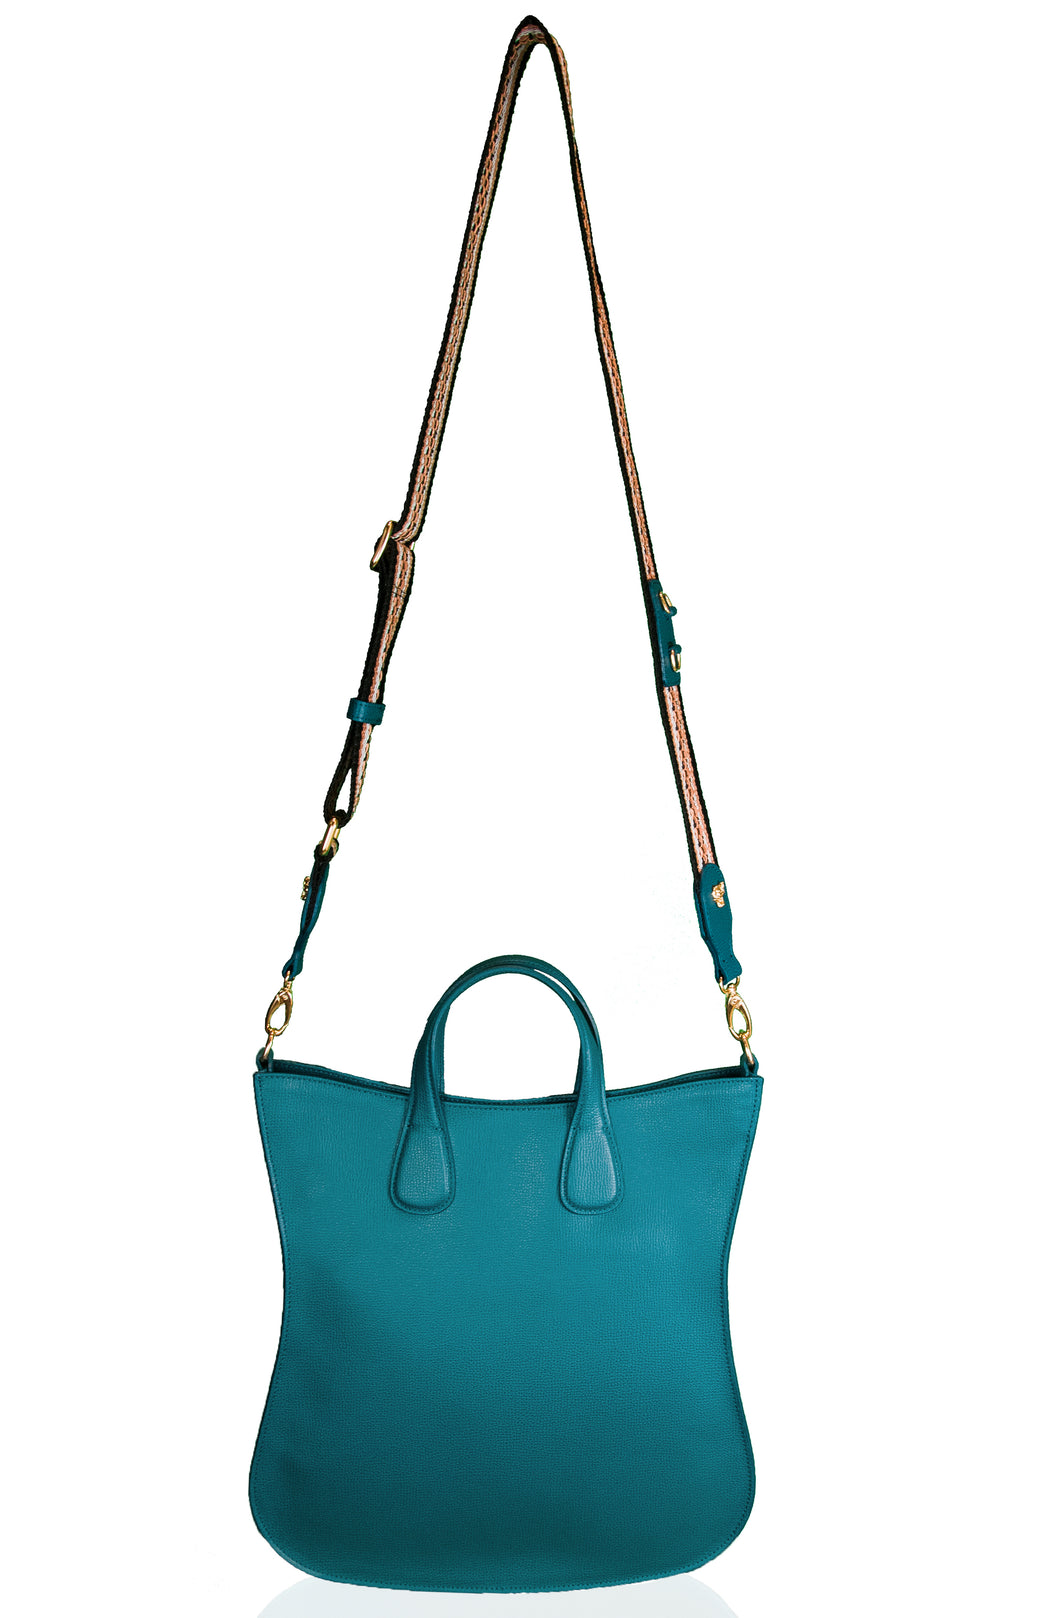 Gatsby Tote - Teal